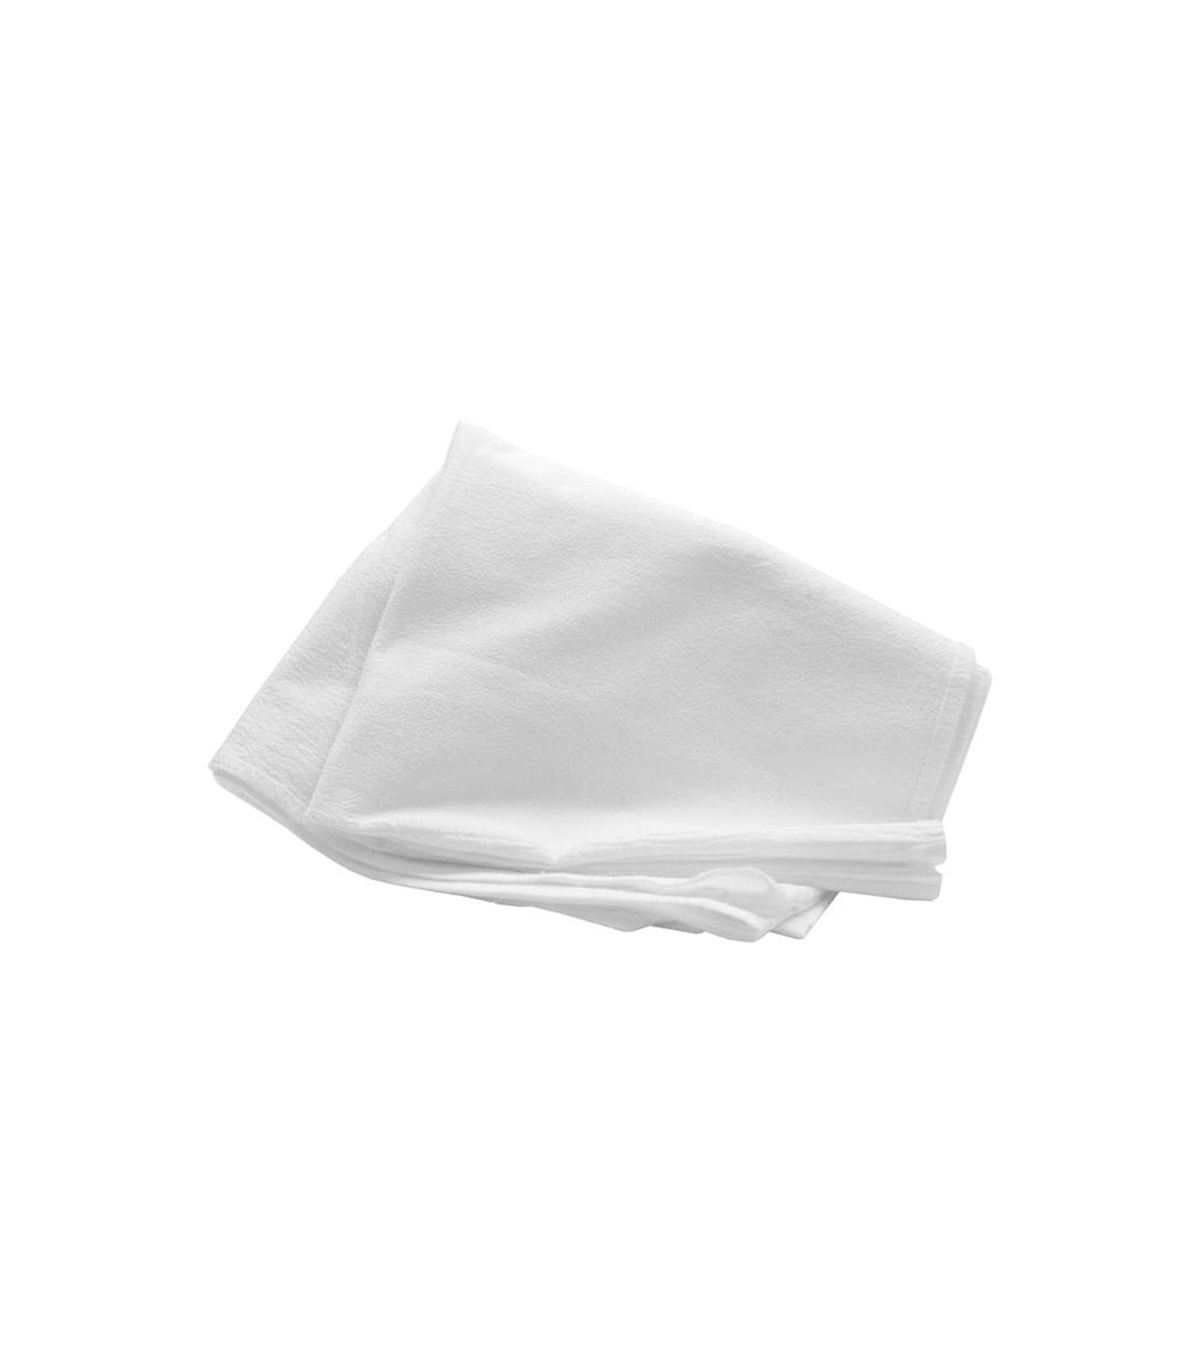 Berg Bag Flour Sack Towel 32\u0022x36\u0022